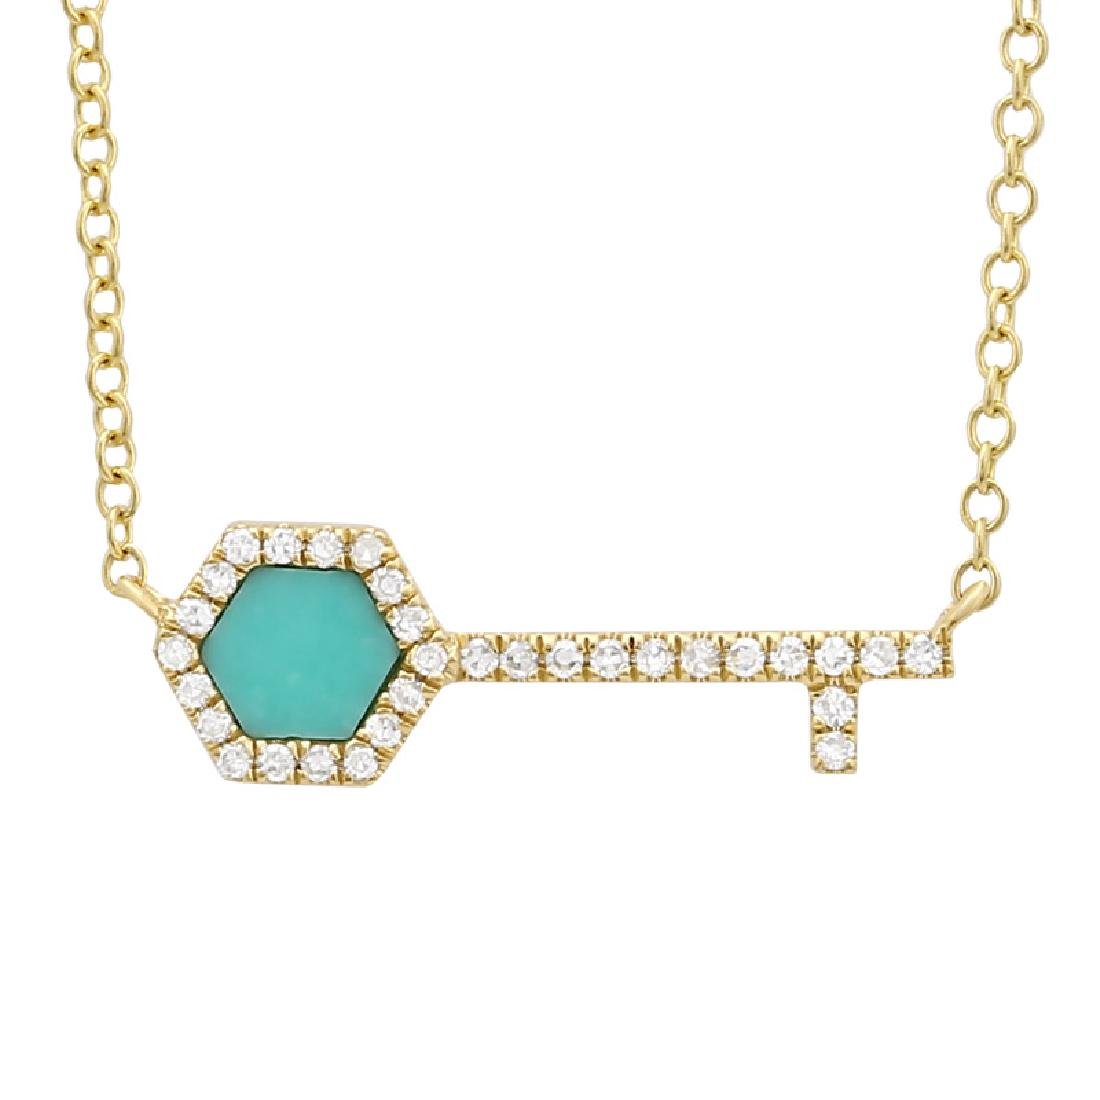 14KT Yellow Gold Gemstone Necklace - 2